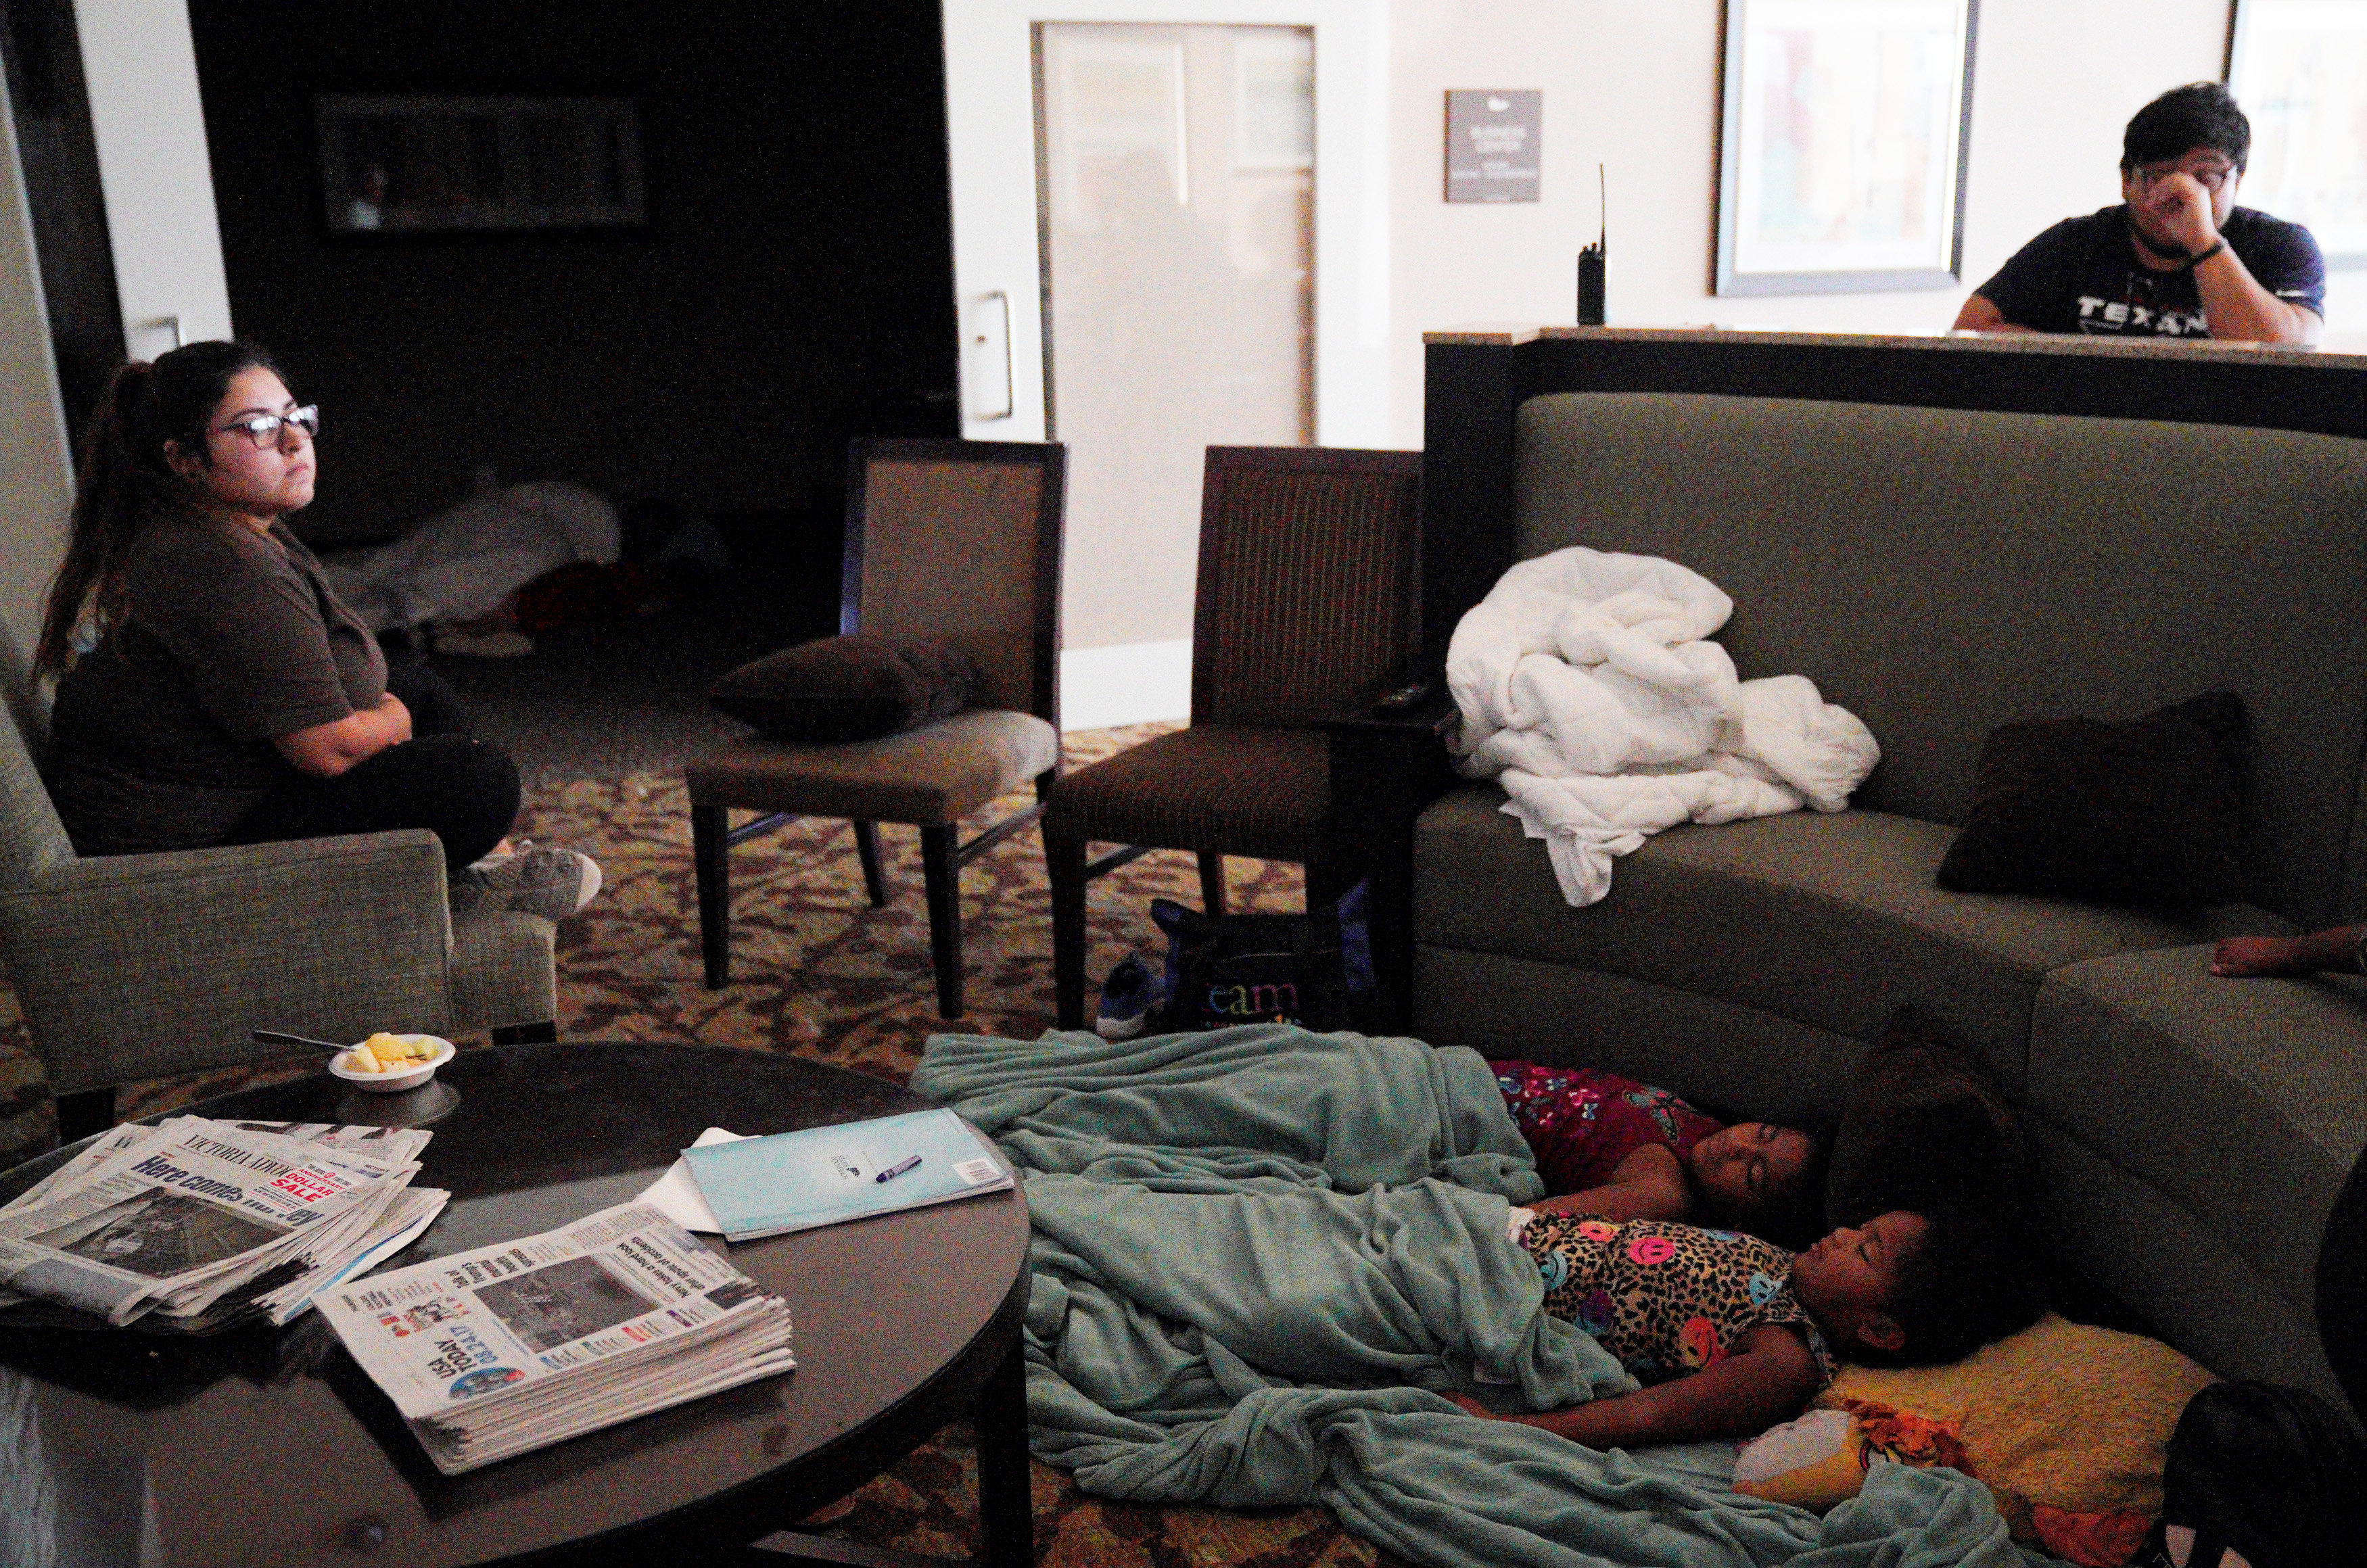 Children sleep in a hotel lobby waiting out Hurricane Harvey in Victoria, Texas on Aug. 26, 2017. (REUTERS/Rick Wilking)